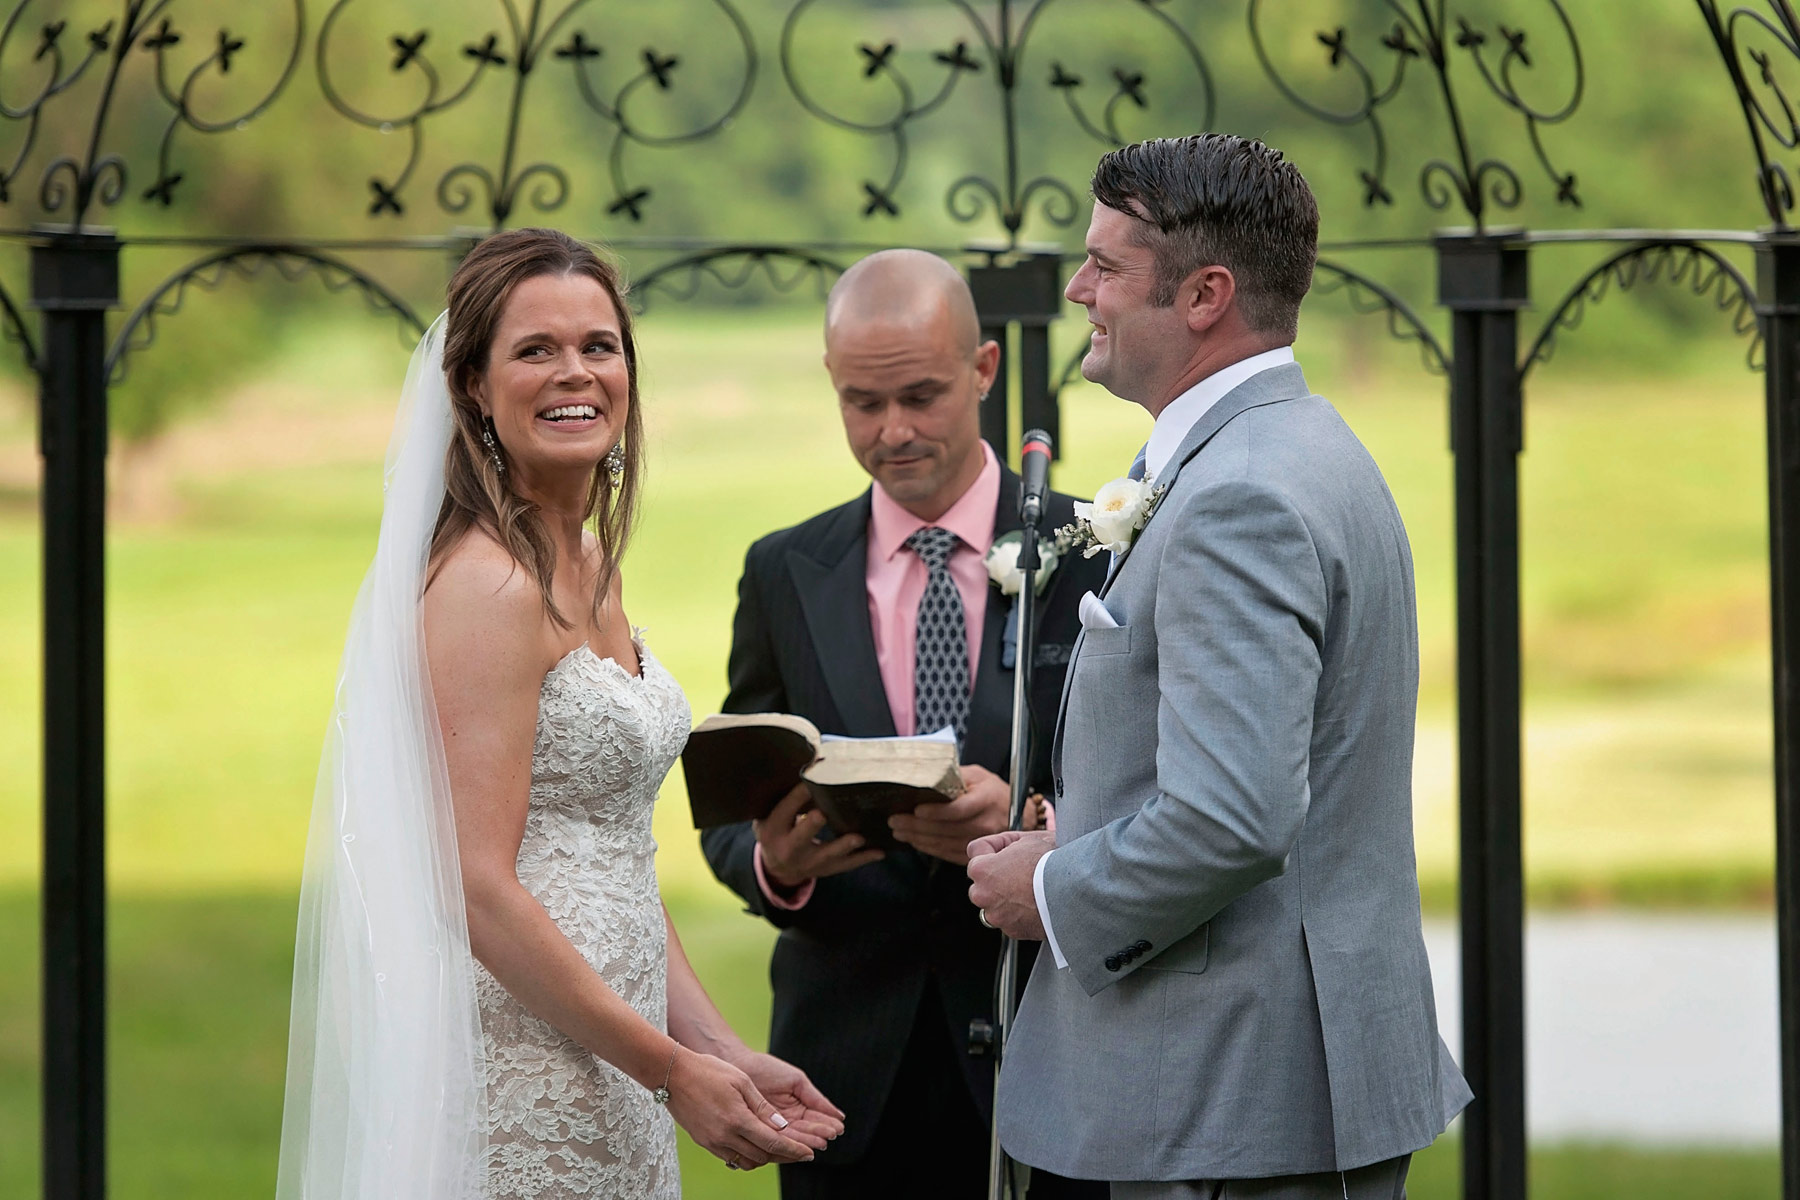 Bride laughs during wedding vow exchange